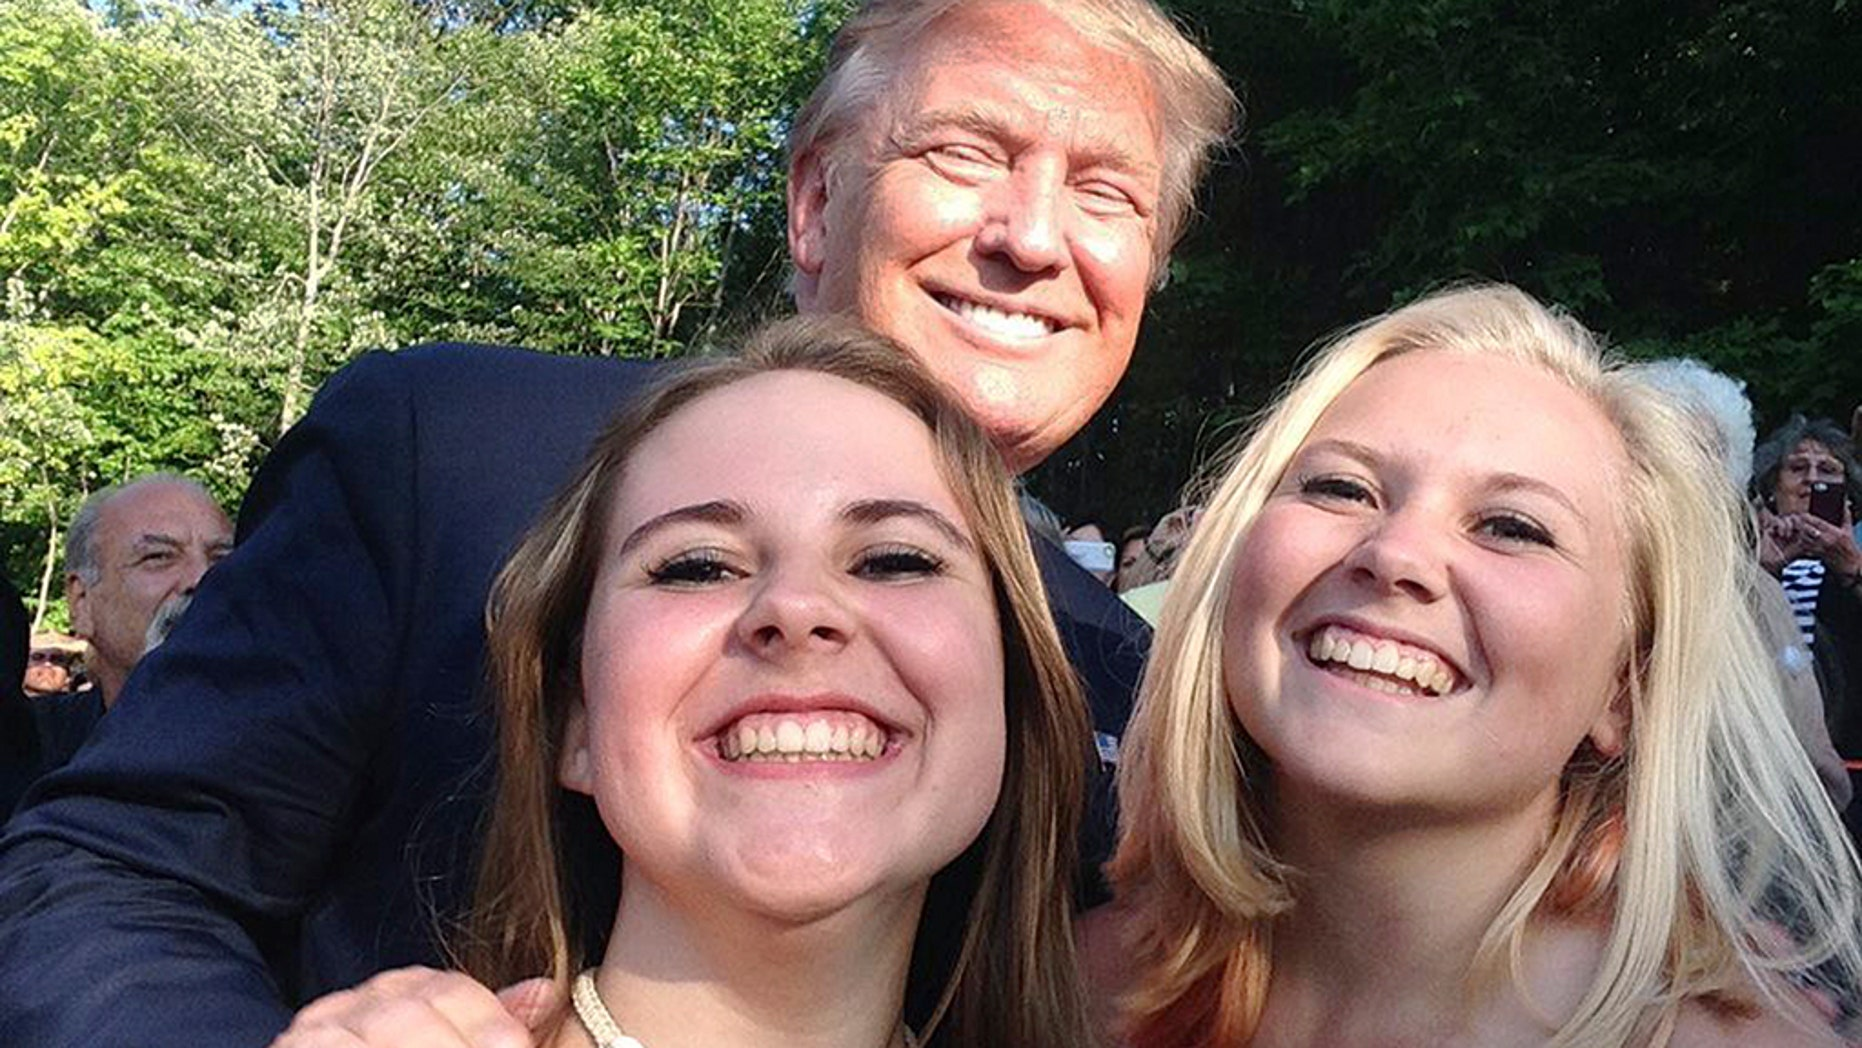 President Trump posed for a photo with Emma Nozell, left, and her sister Addy Nozell in Laconia, N.H. in July 2015. They snagged selfies with every candidate in the 2016 presidential campaign. Now, their mom, Wendy Thomas, is running her own campaign for state office in New Hampshire.